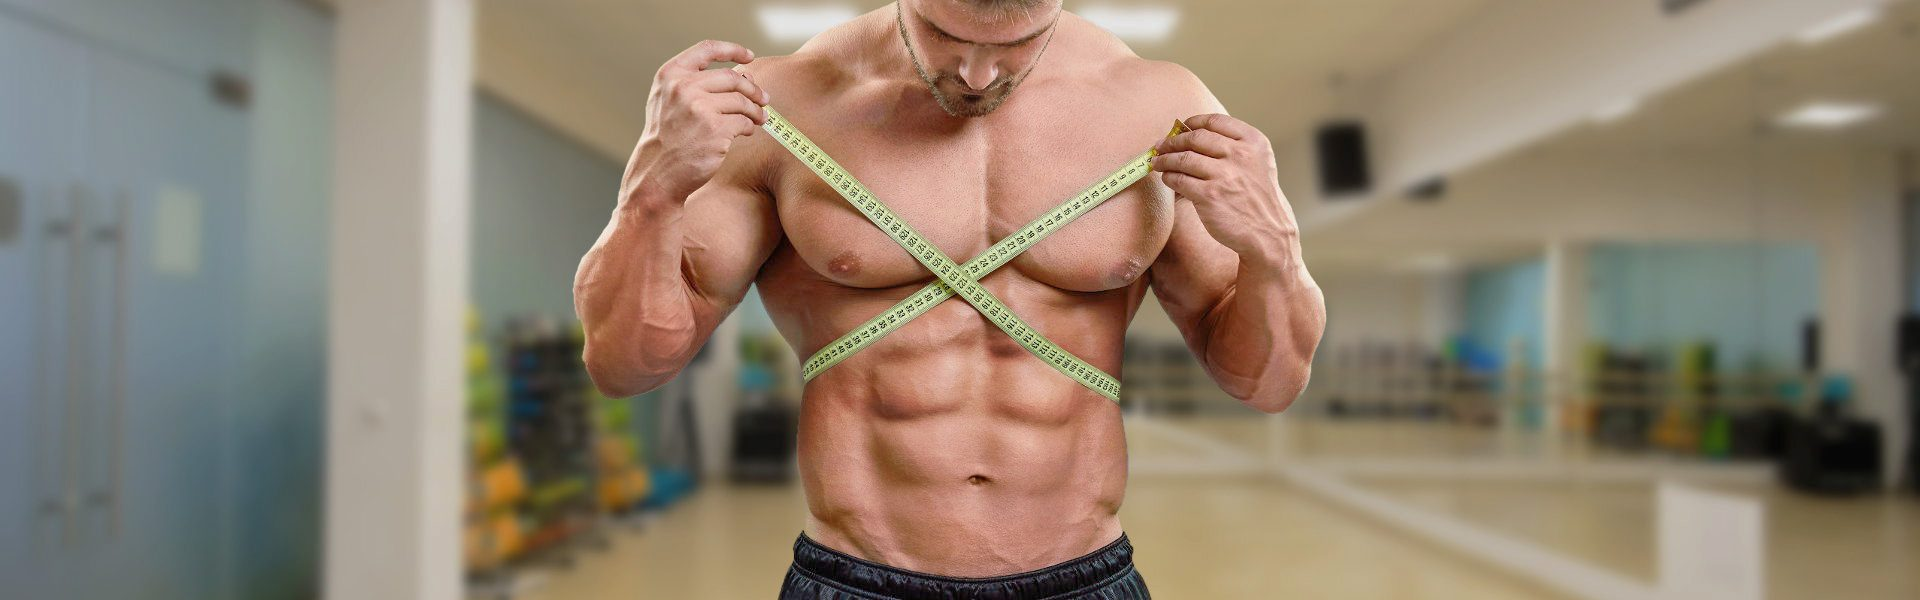 Buy Steroids Online. Anabolics Online Shop.